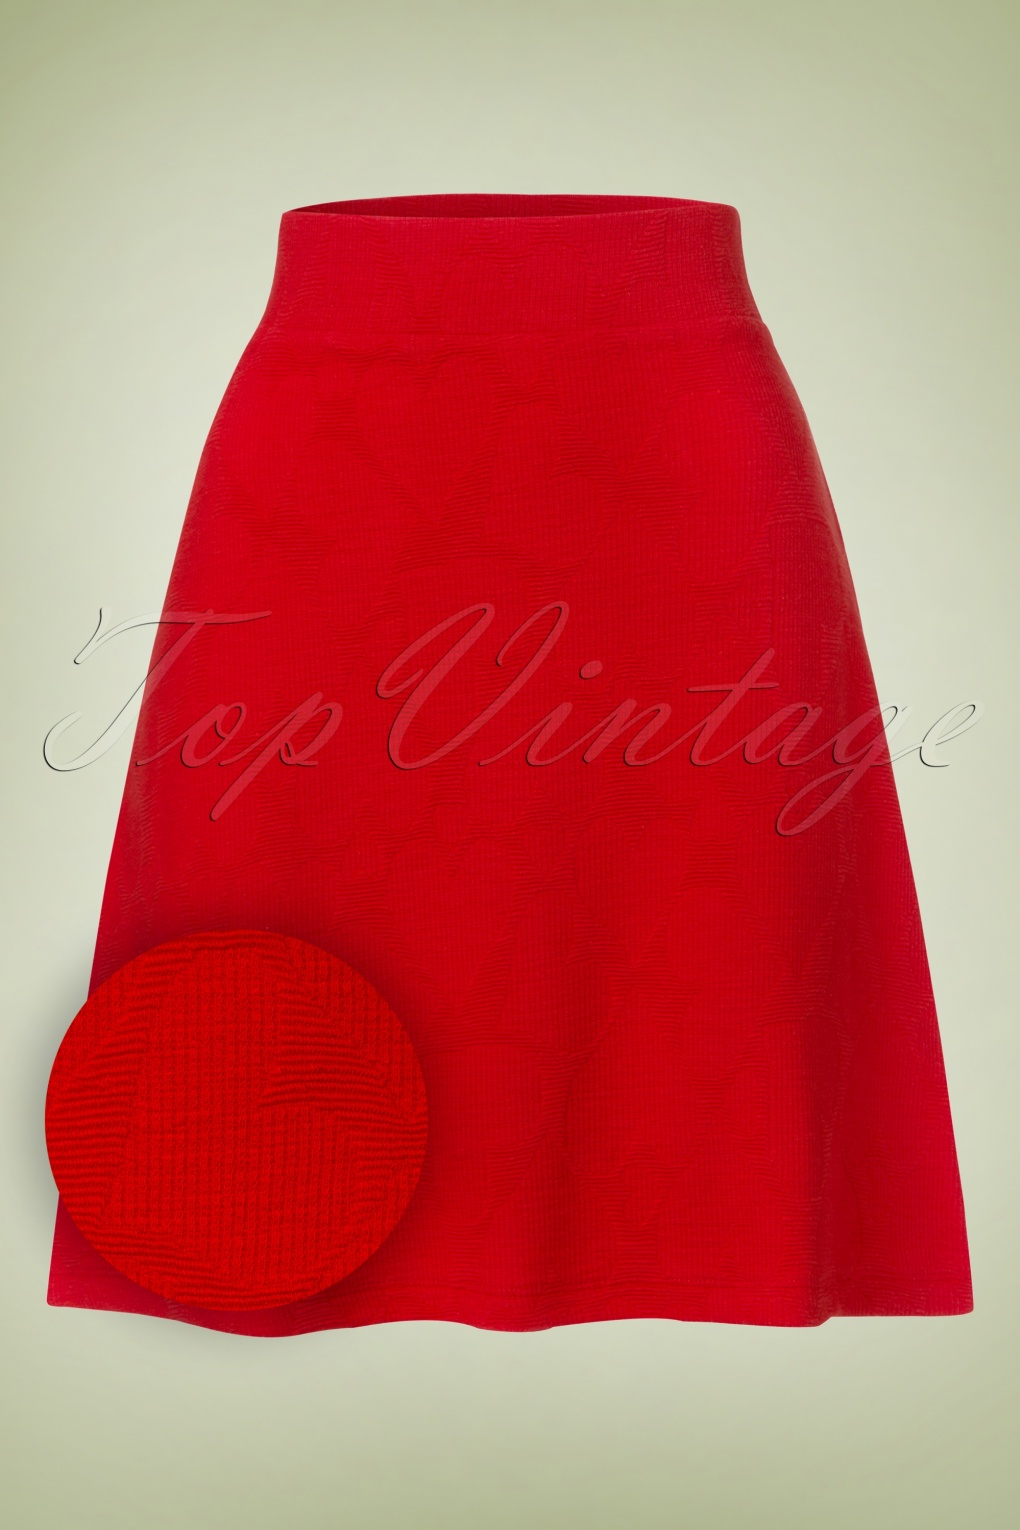 1960s Style Skirts 60s Lovely Love Hearts Skirt in Red £38.81 AT vintagedancer.com